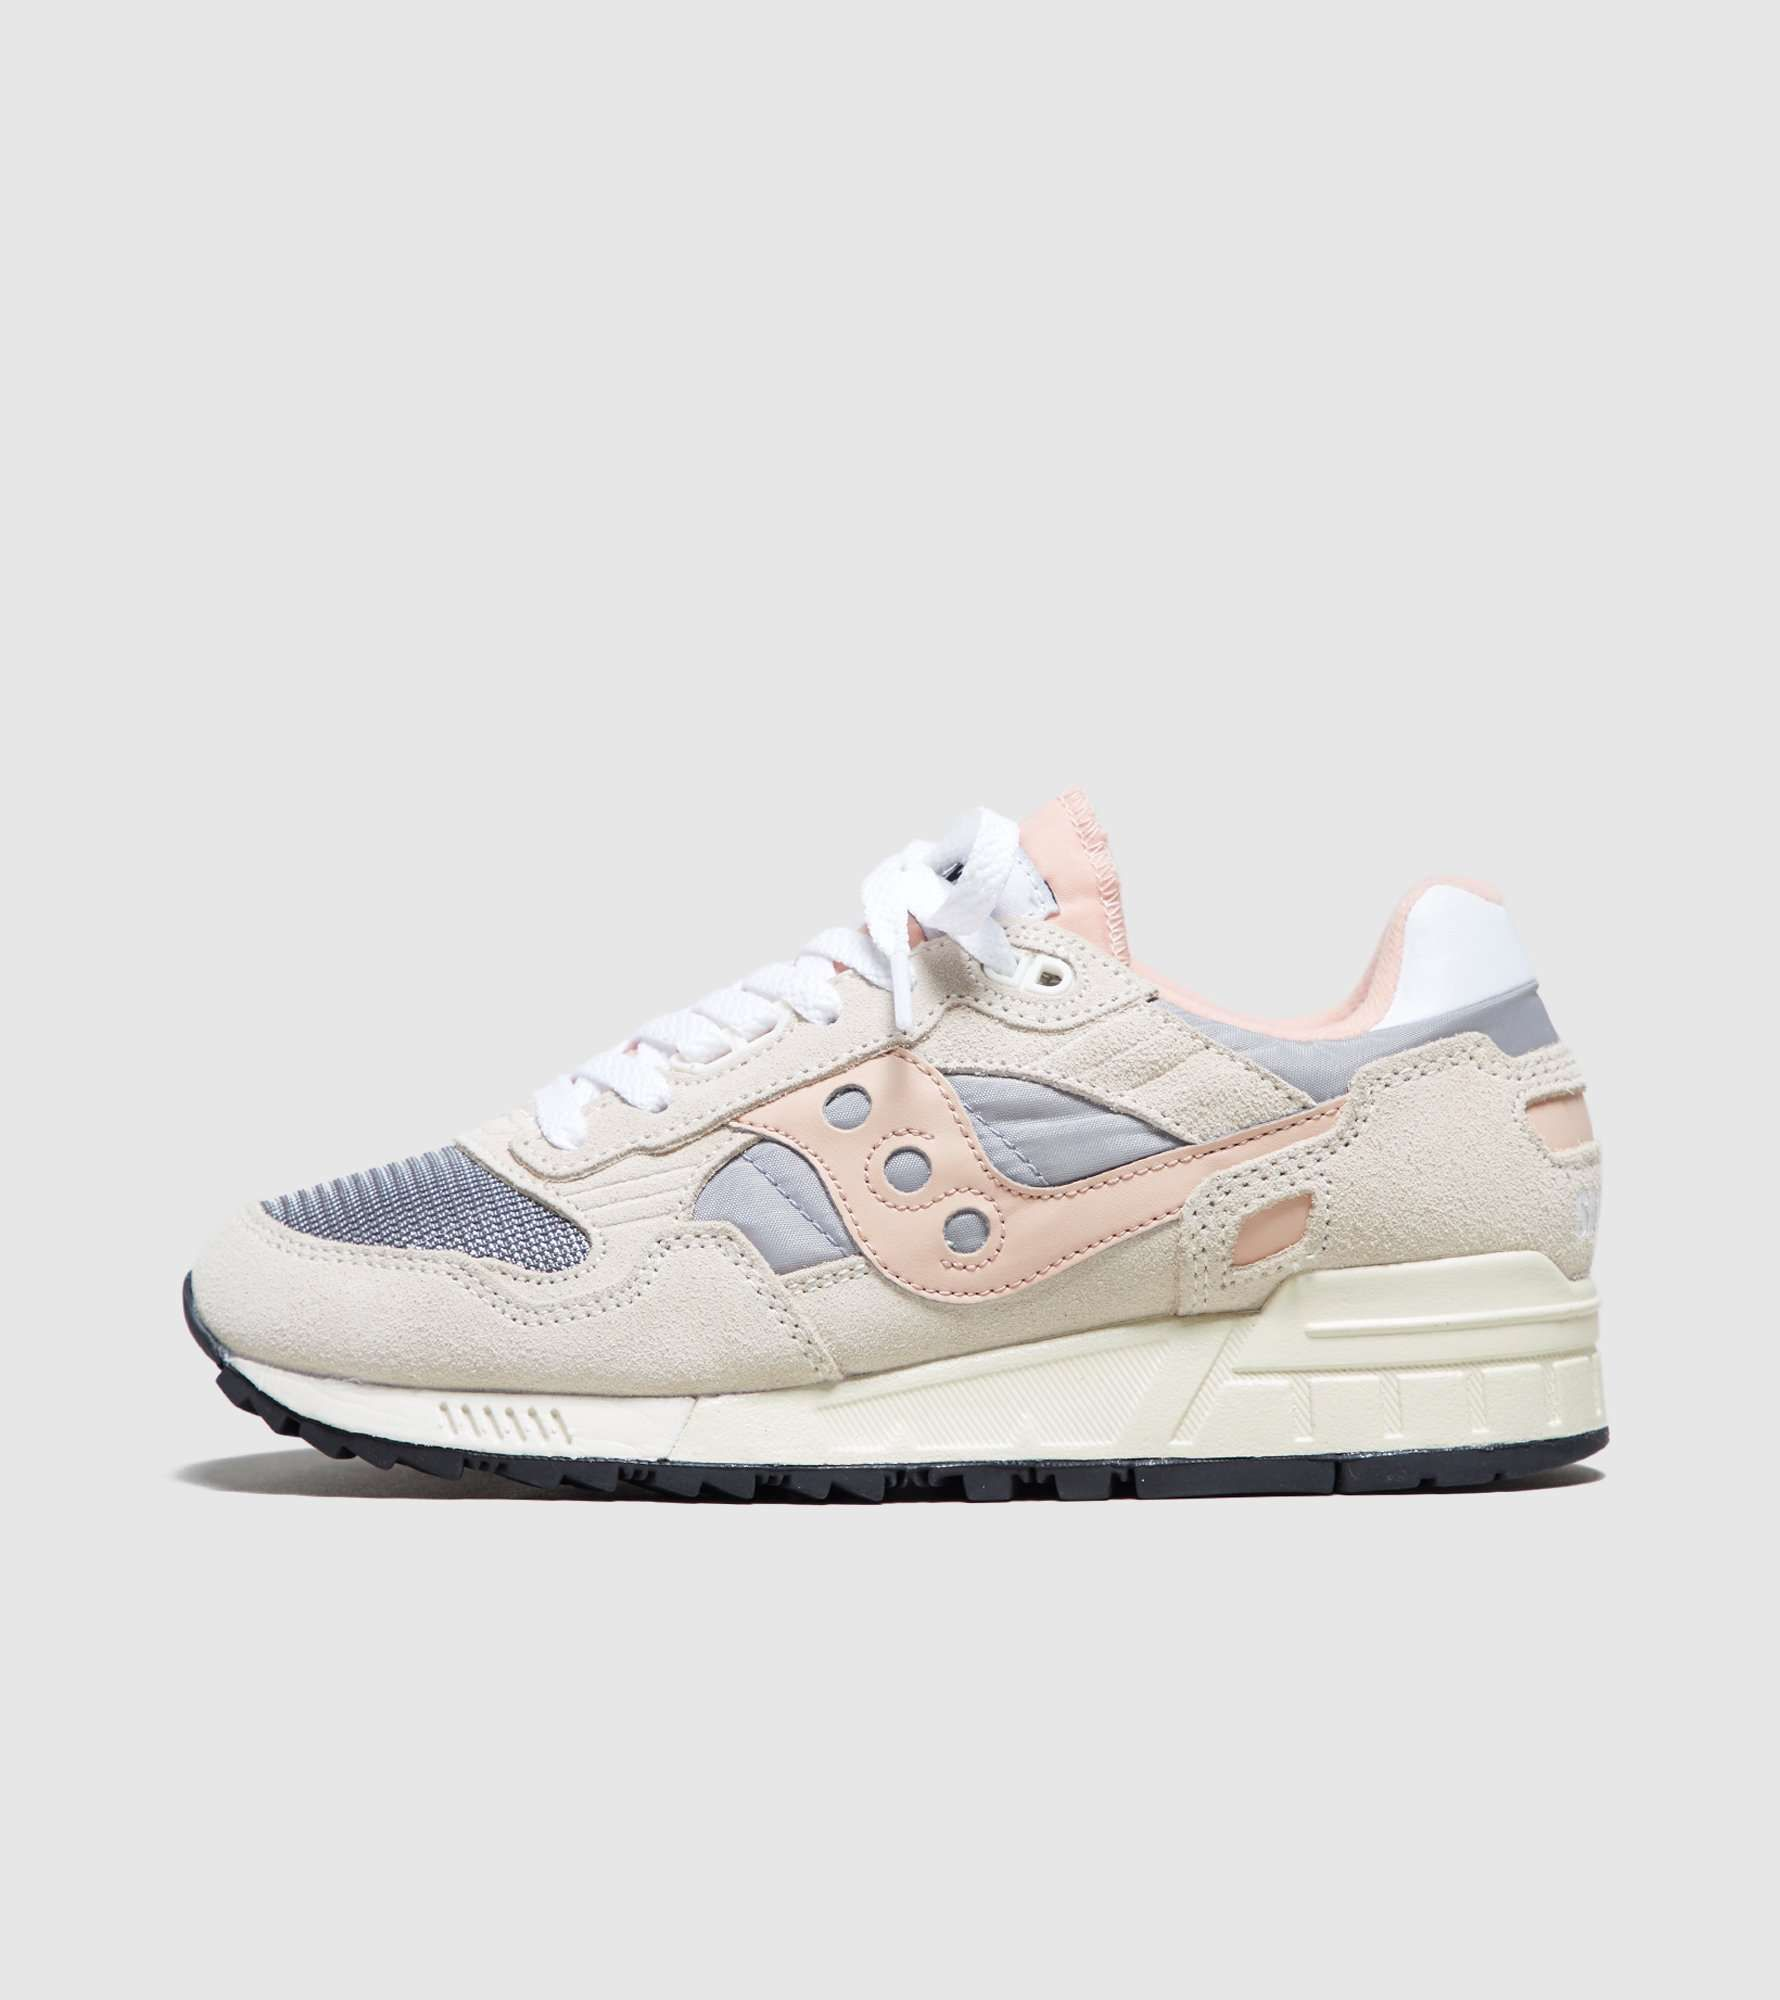 new concept 15ca1 77383 Saucony Shadow 5000 Vintage Women's - find out more on our ...